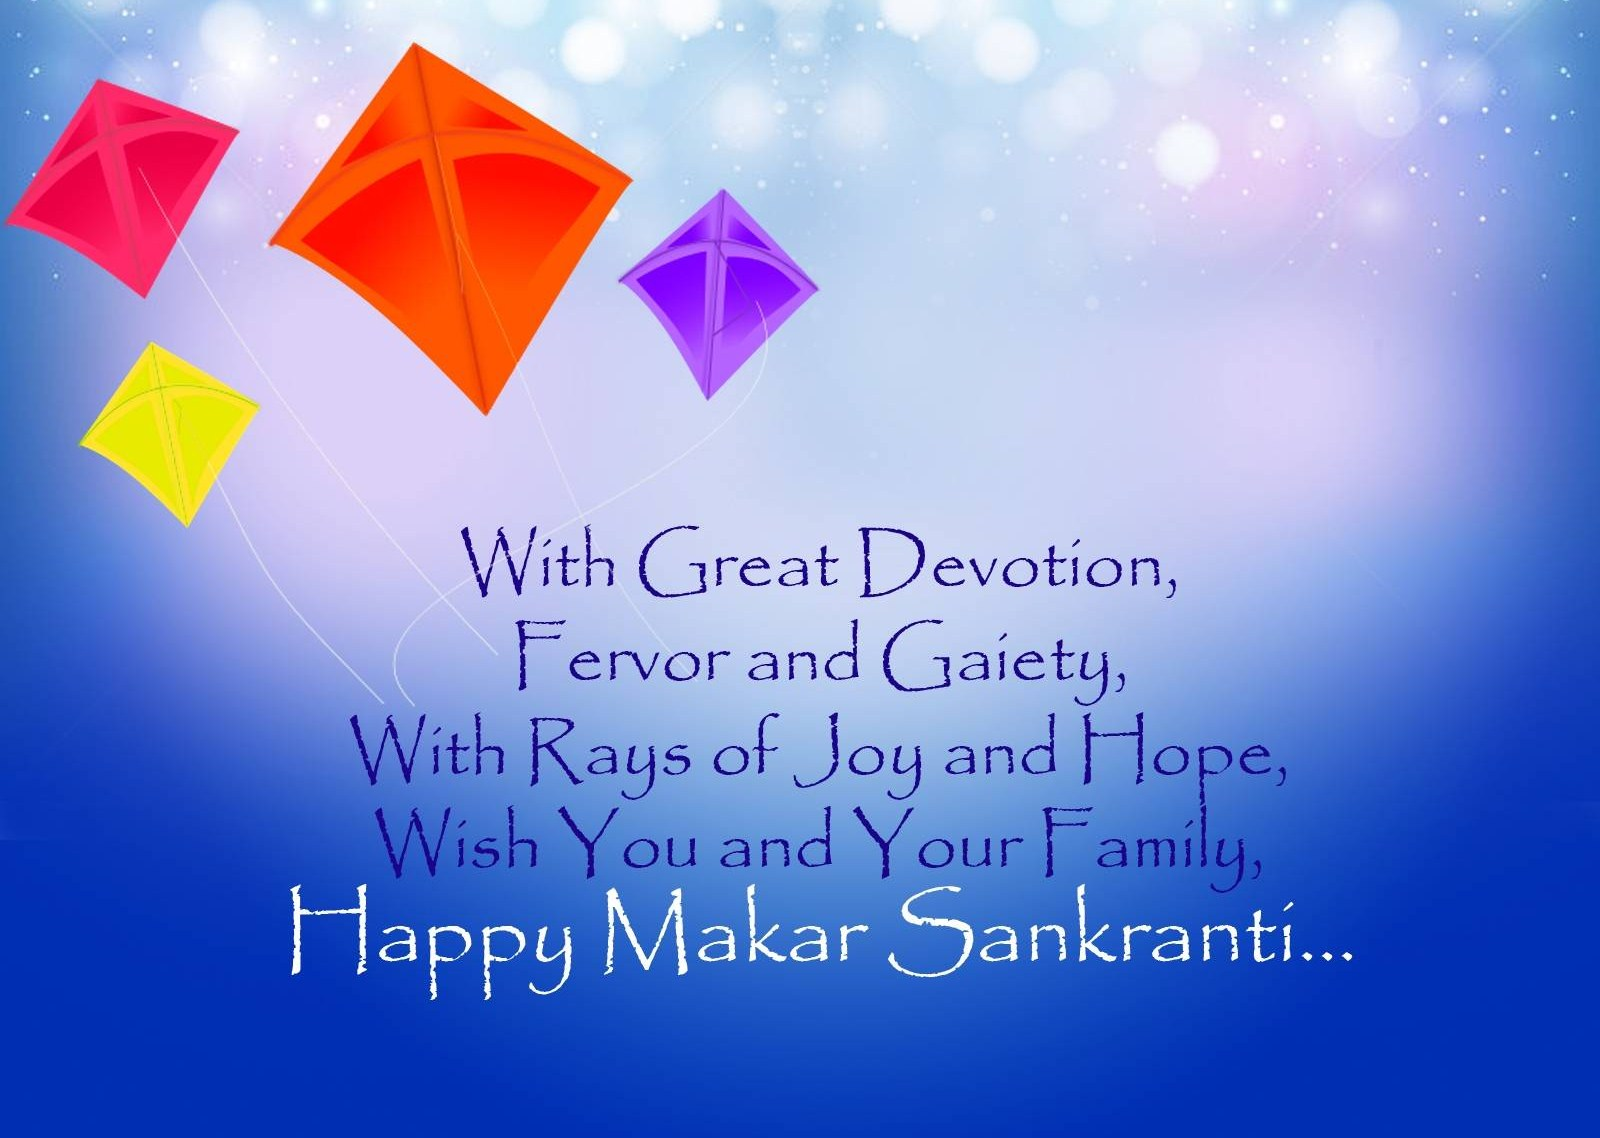 Makar Sankranti Images for Whatsapp DP, Profile Wallpapers 2017